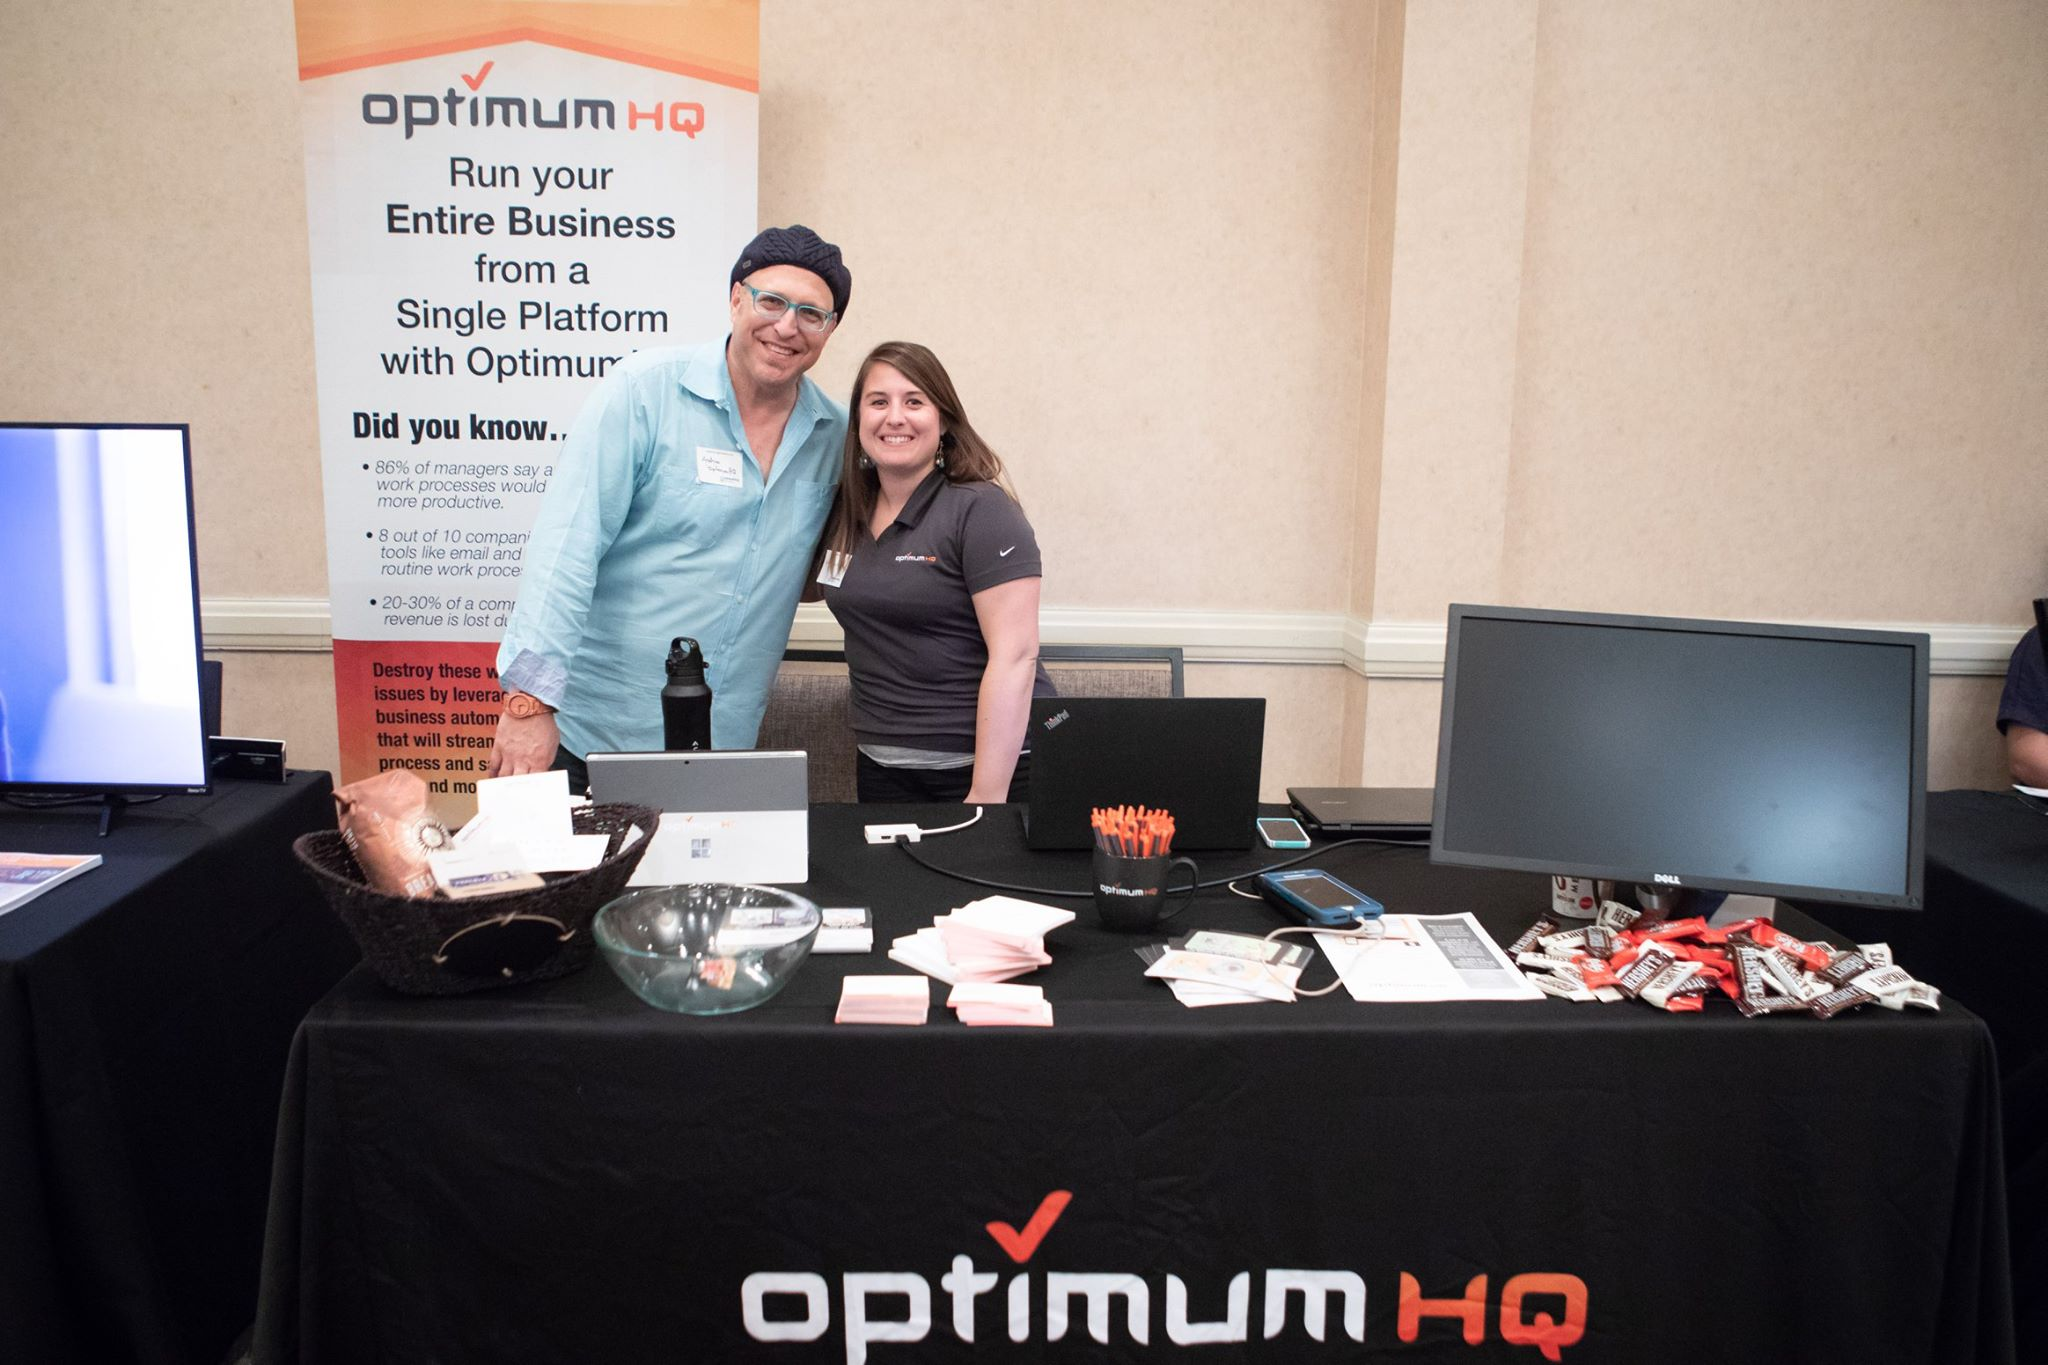 OptimumHQ employees Amanda and Andrew working a trade show booth